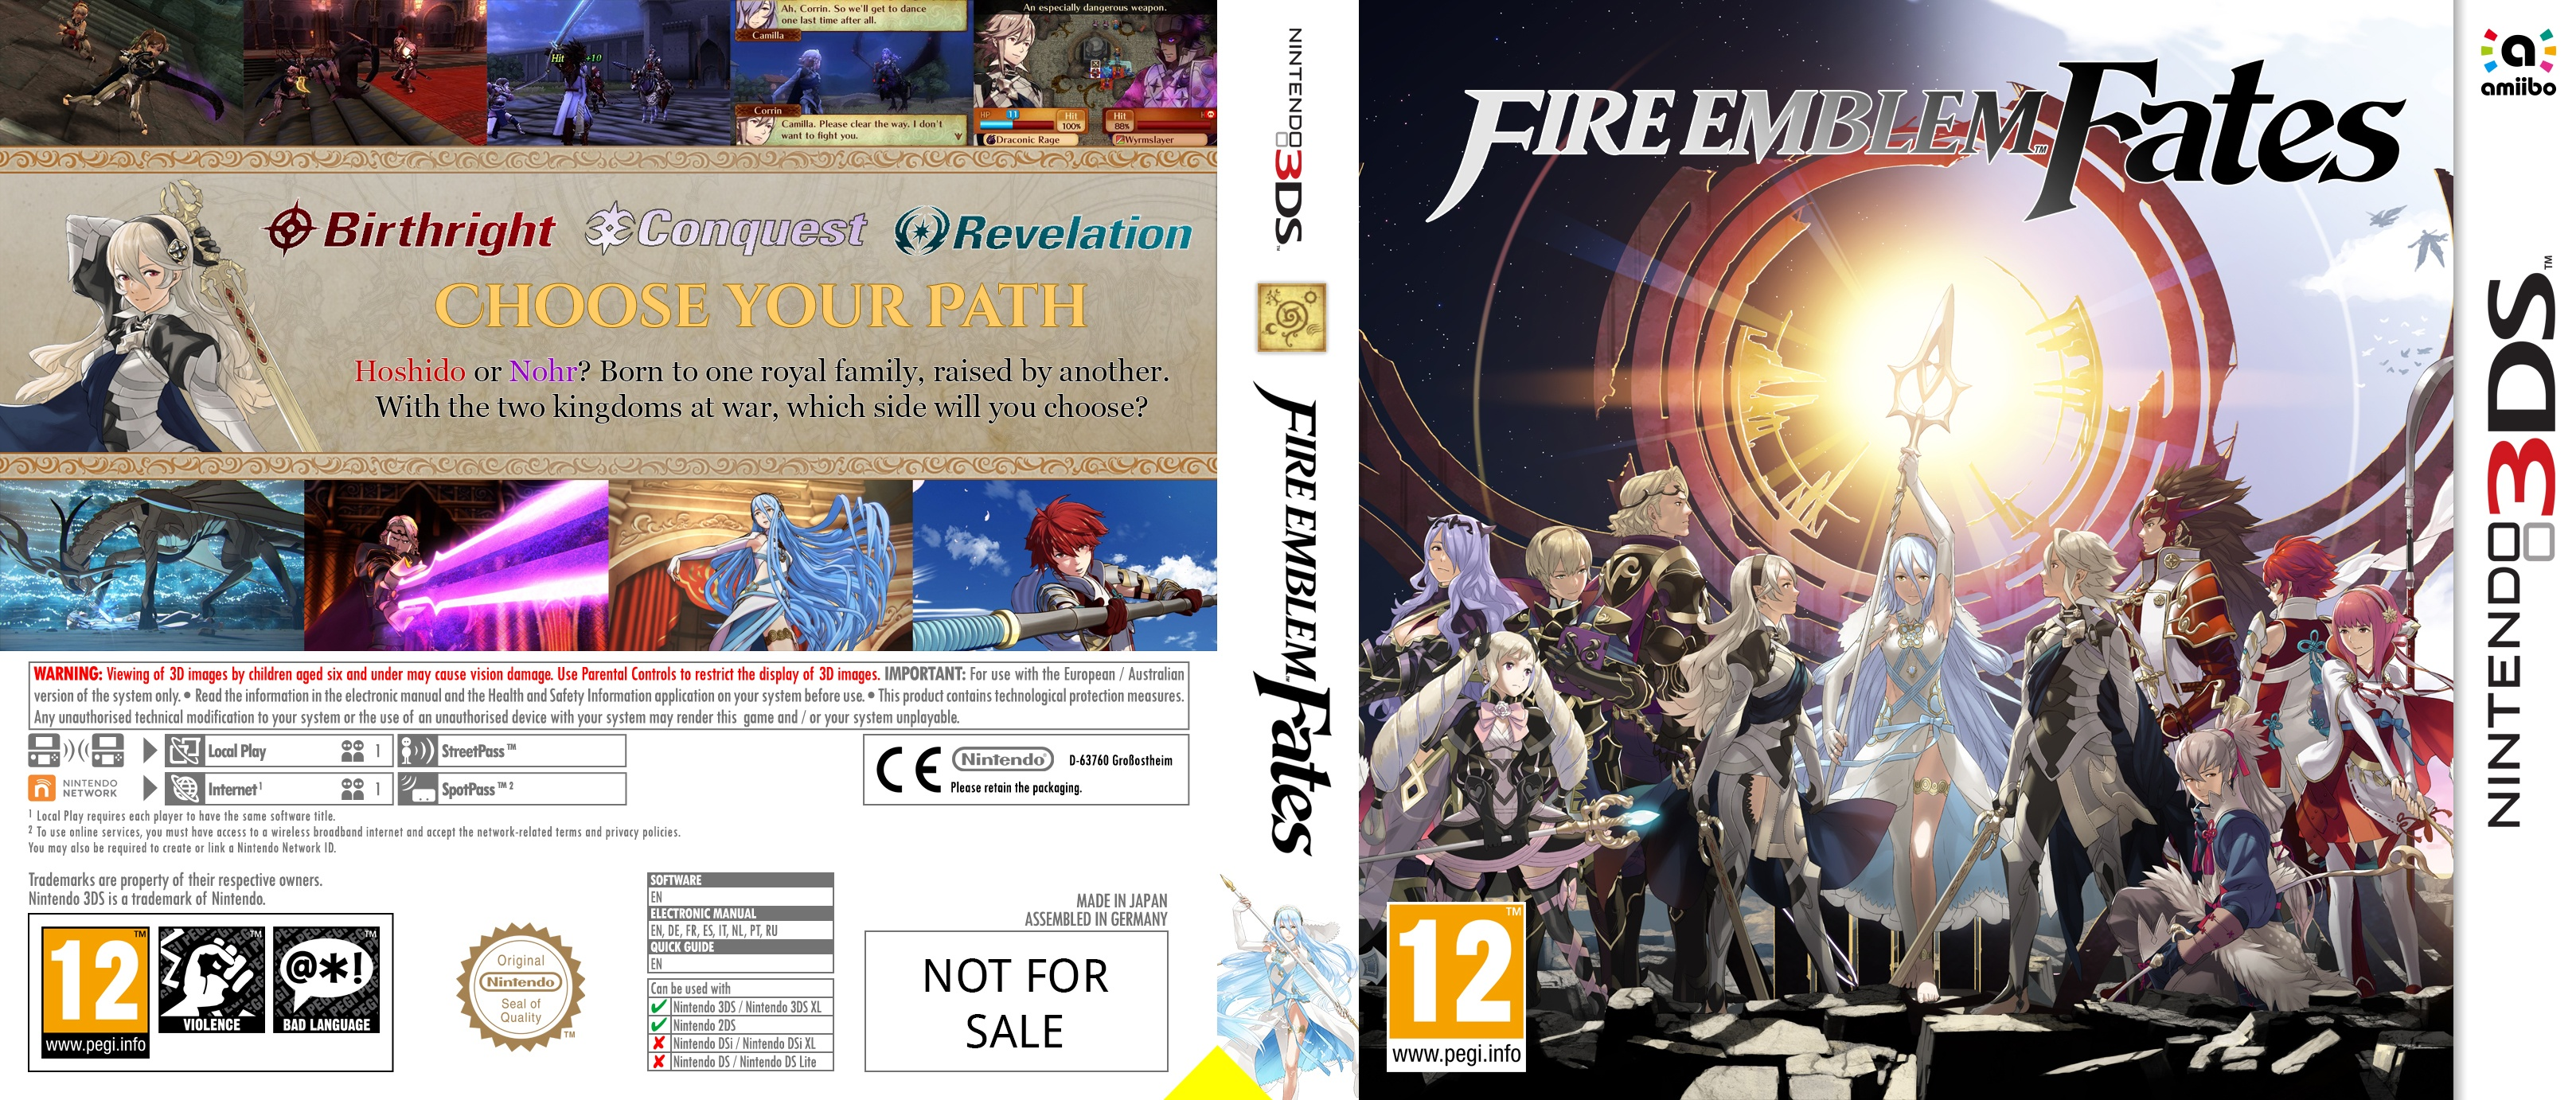 Fire Emblem Fates box cover